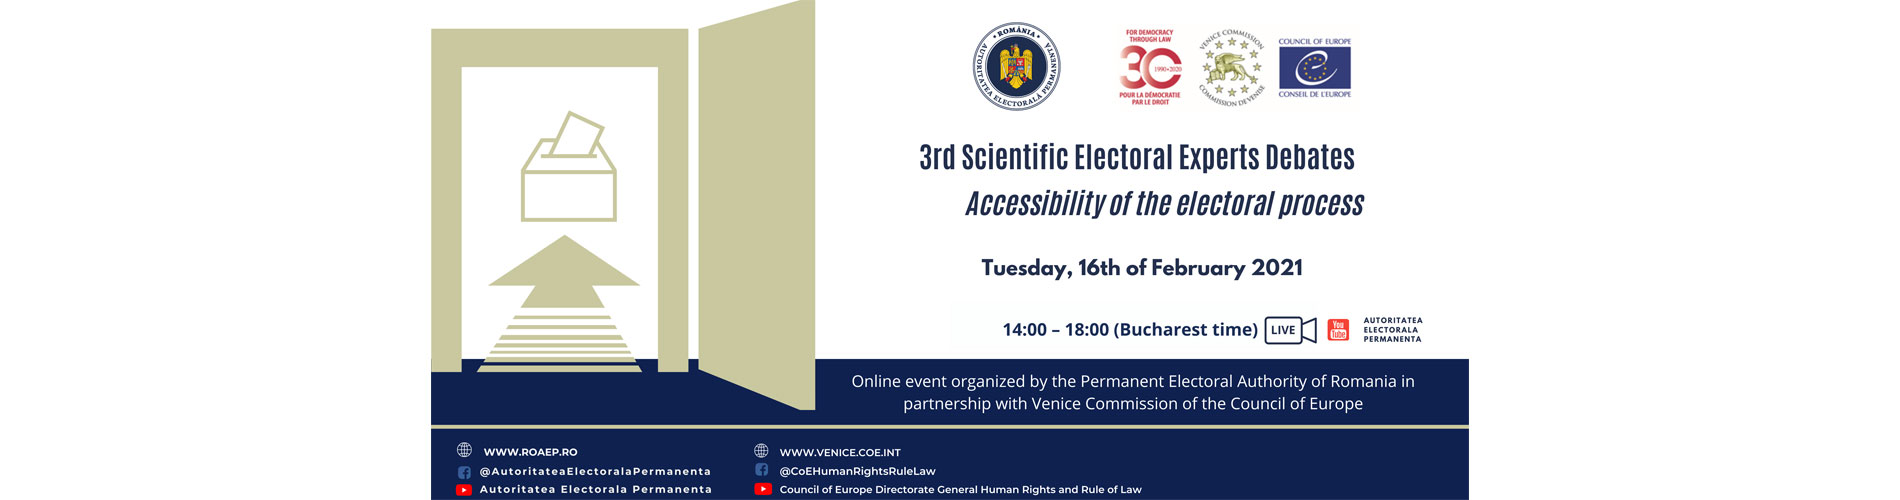 3rd Scientific Electoral Experts Debates with the topic Accessibility of the electoral process – PEA of Romania and the Venice Commission of the Council of Europe